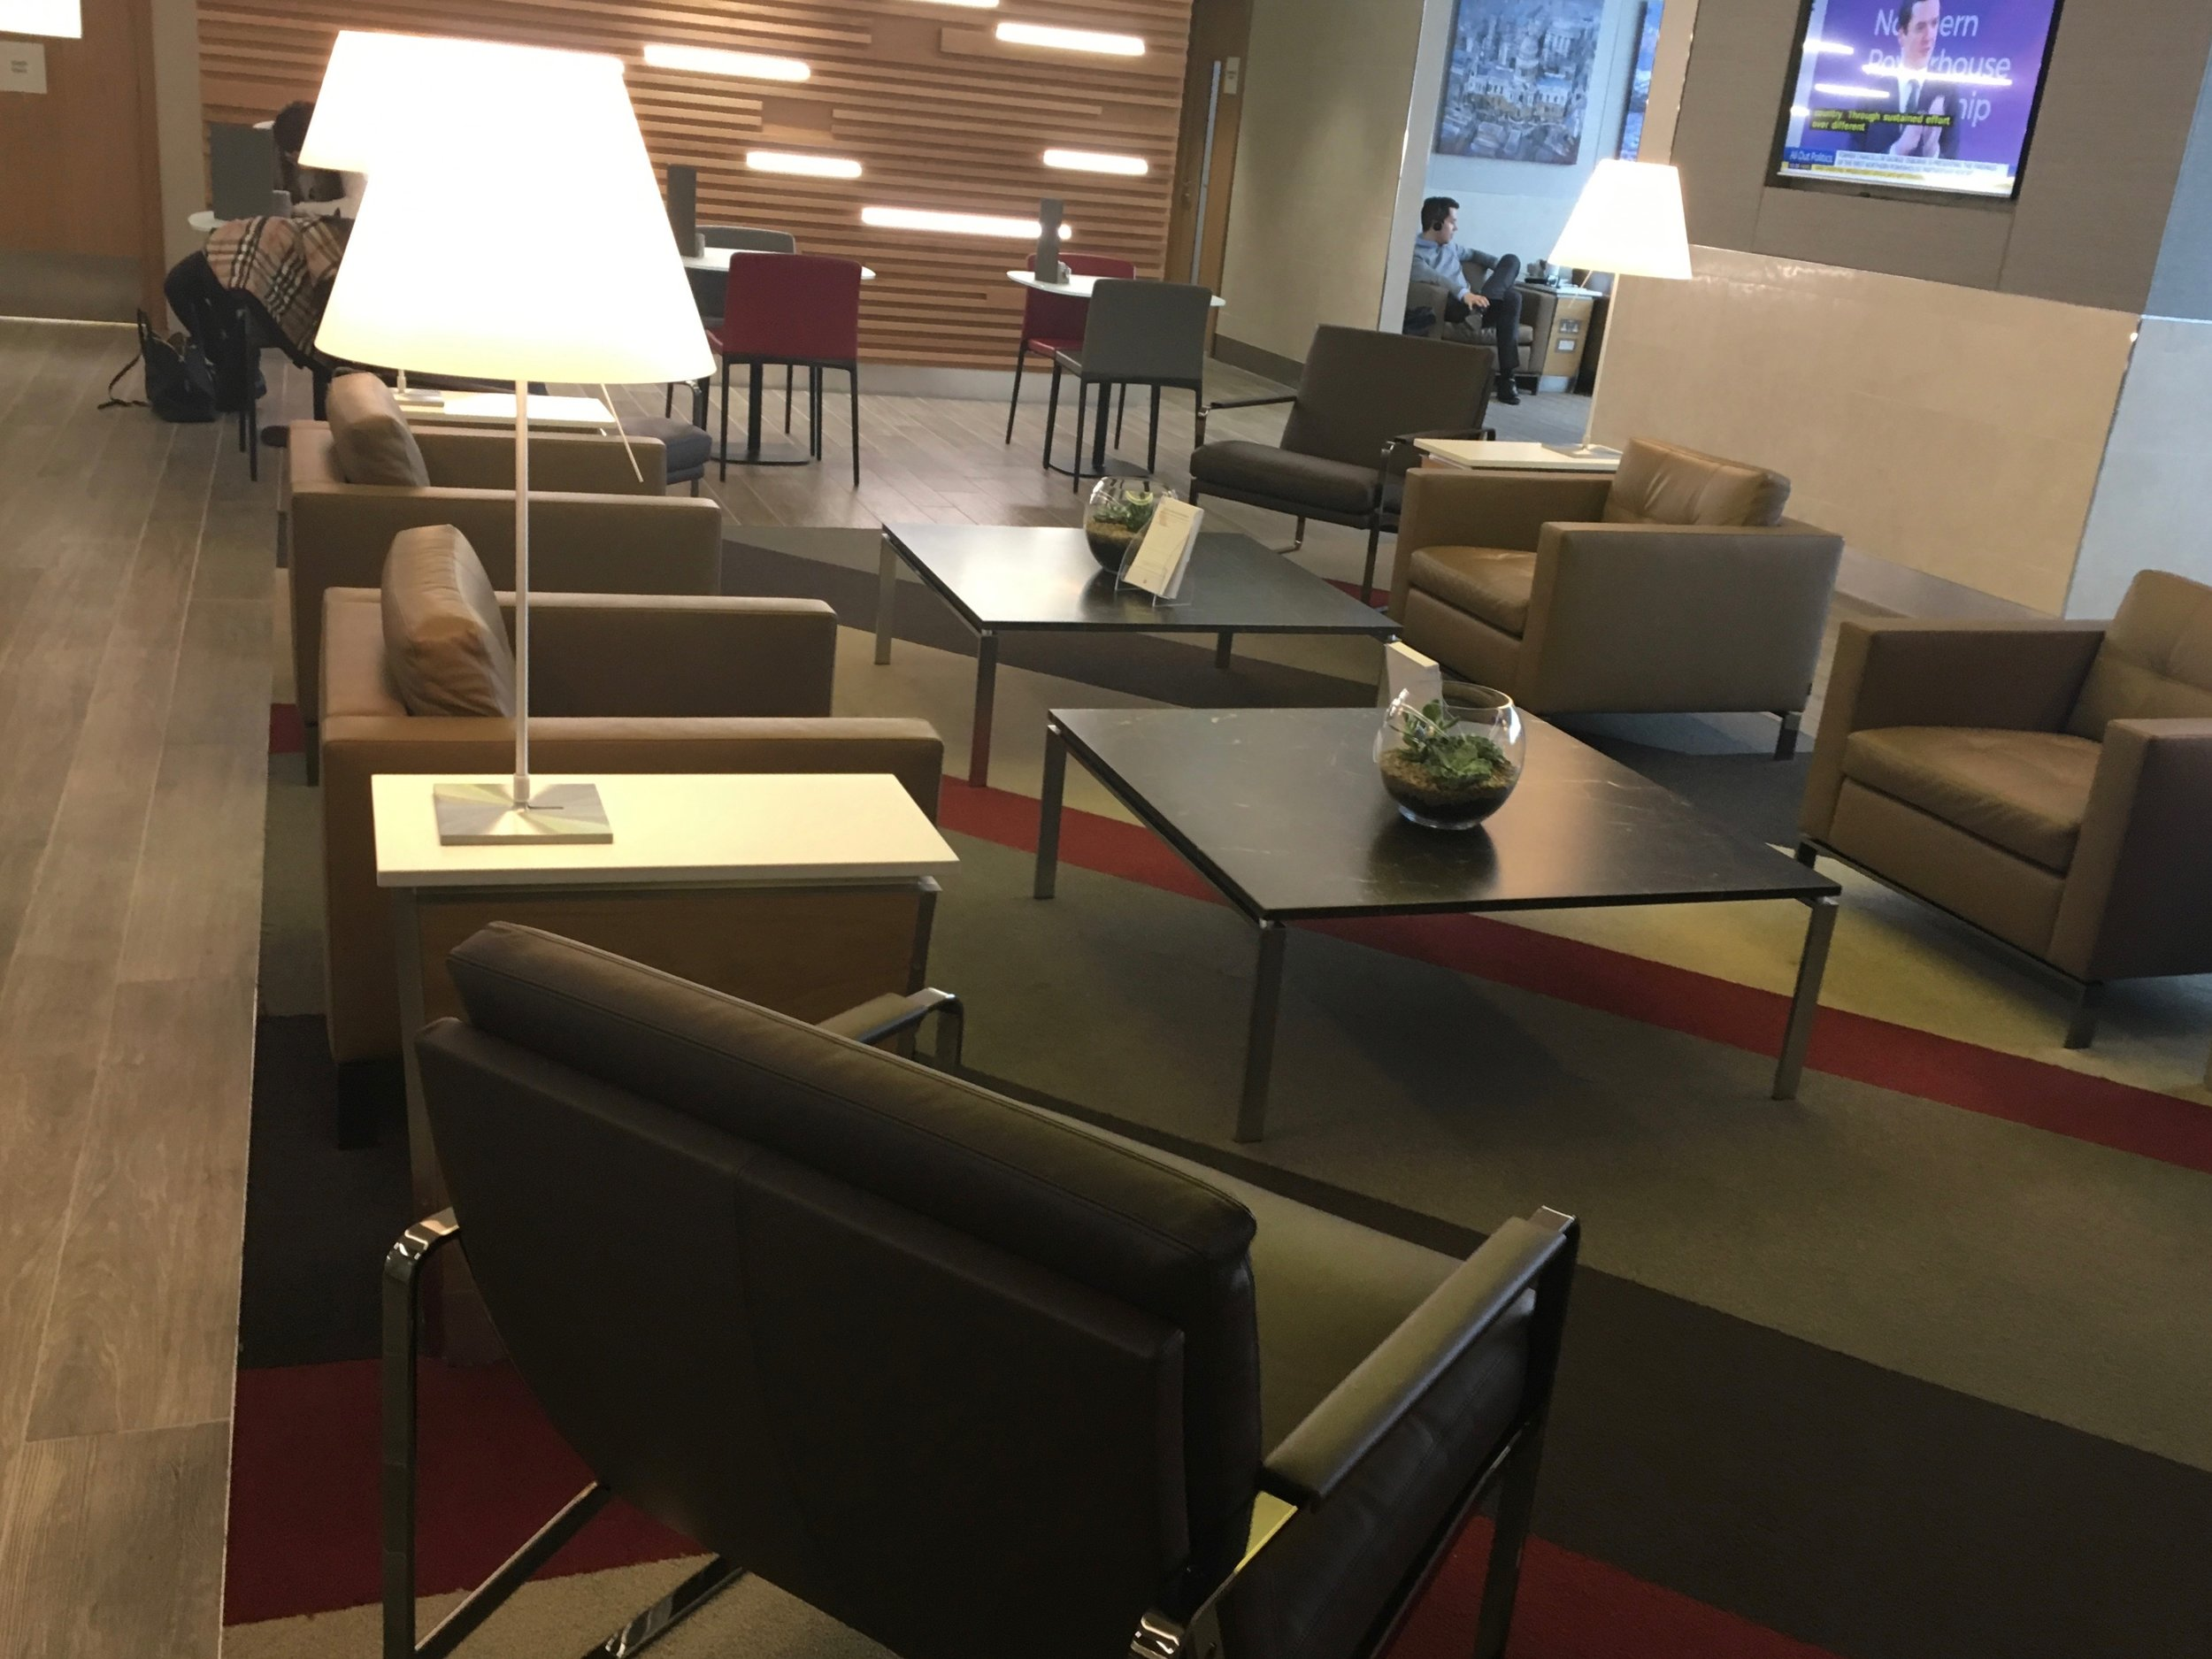 Seats in the main part of the lounge.